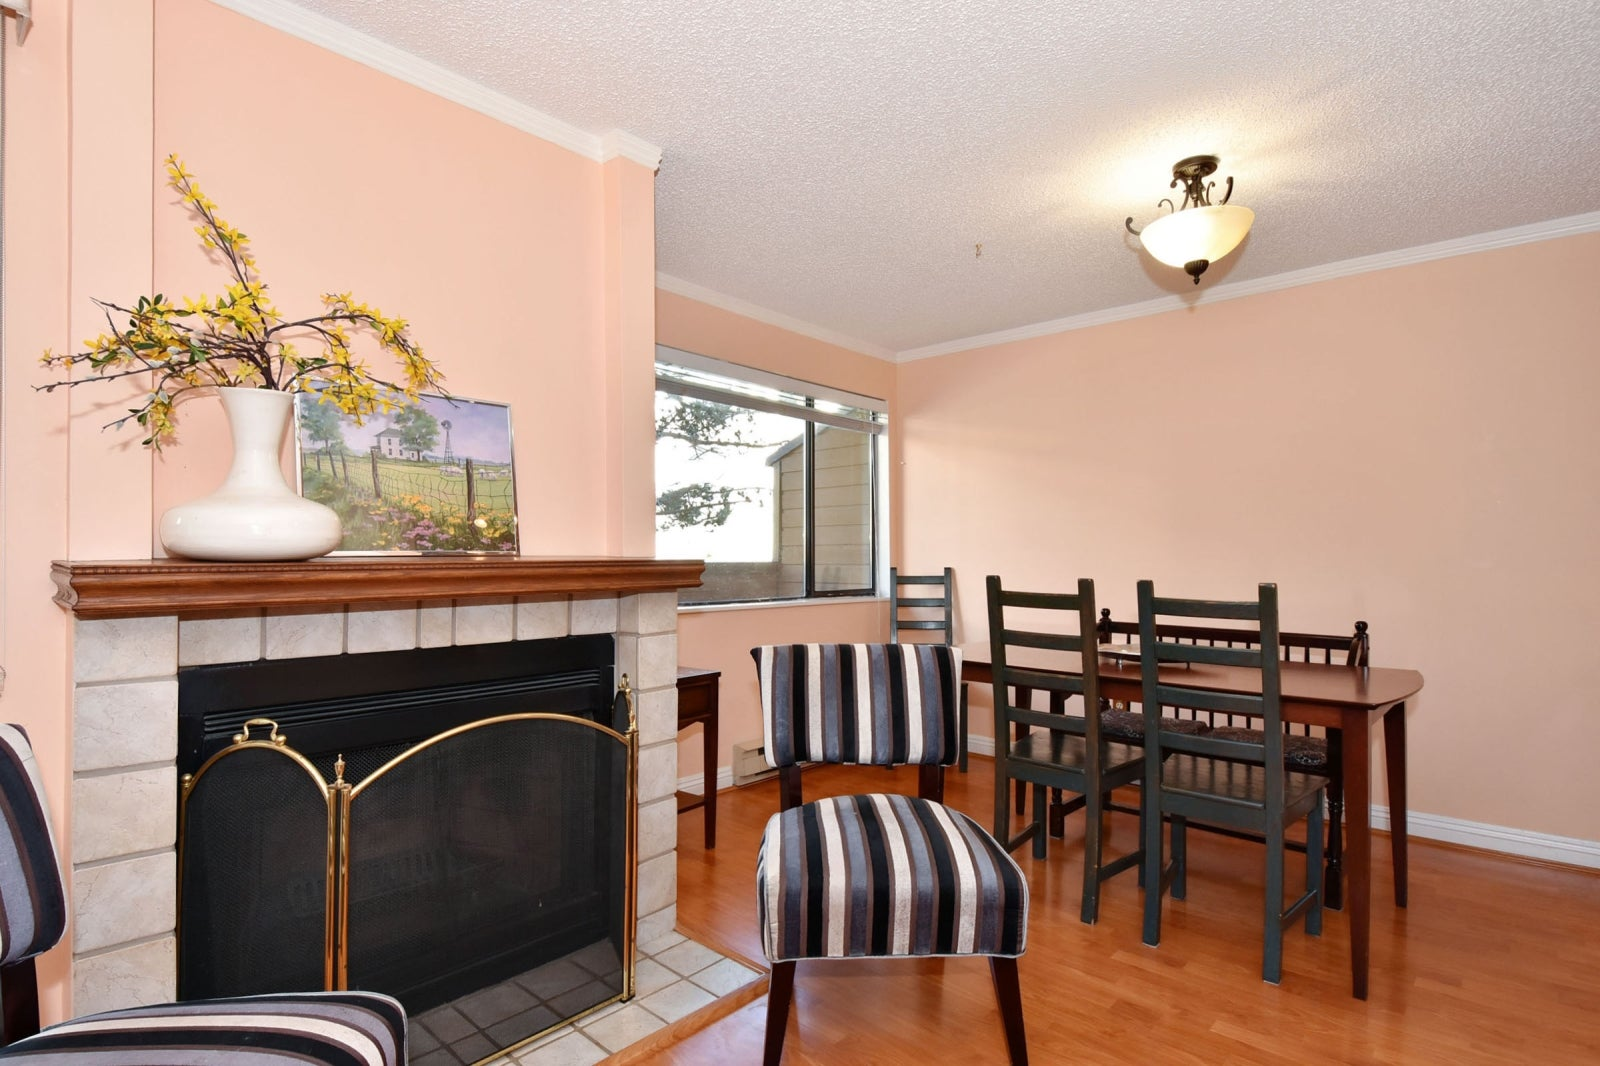 168 7293 MOFFATT ROAD - Brighouse South Apartment/Condo for sale, 2 Bedrooms (R2261480) #8